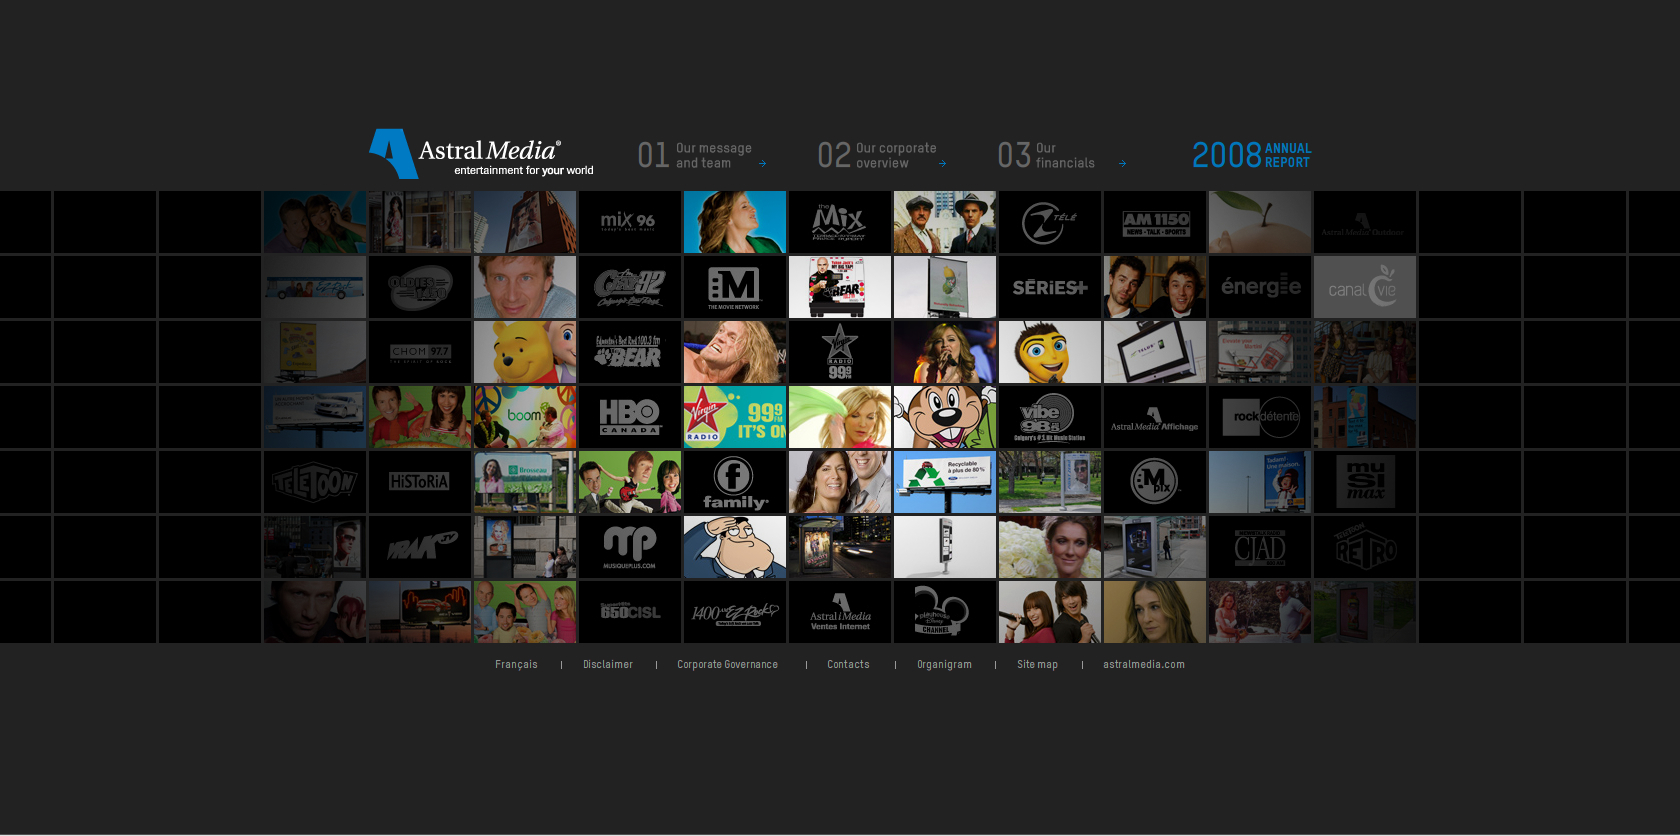 2008 Astral Media Annual Report image